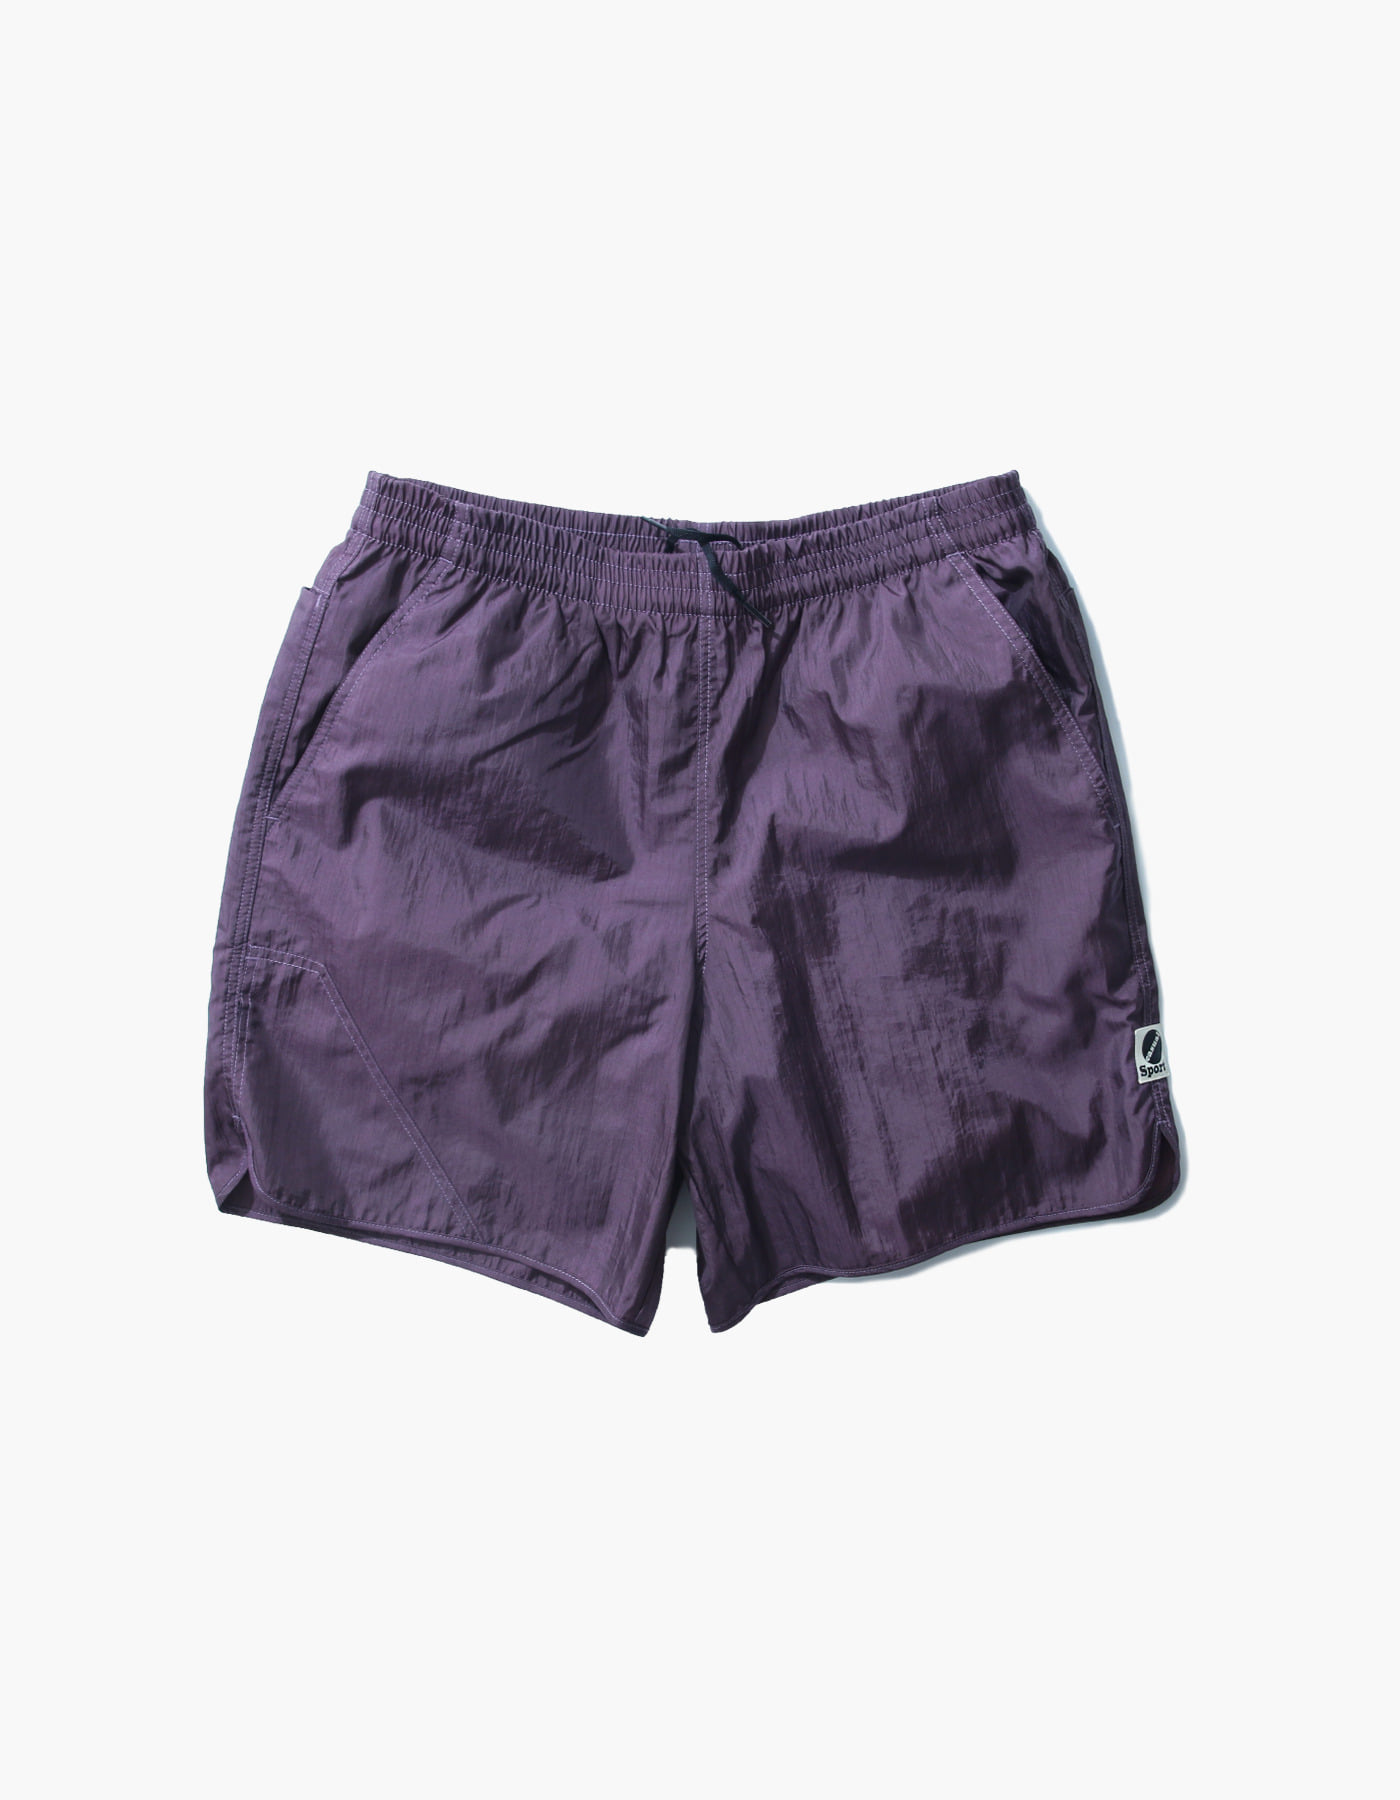 NYLON DIAMOND WASHER SHORTS II / PURPLE